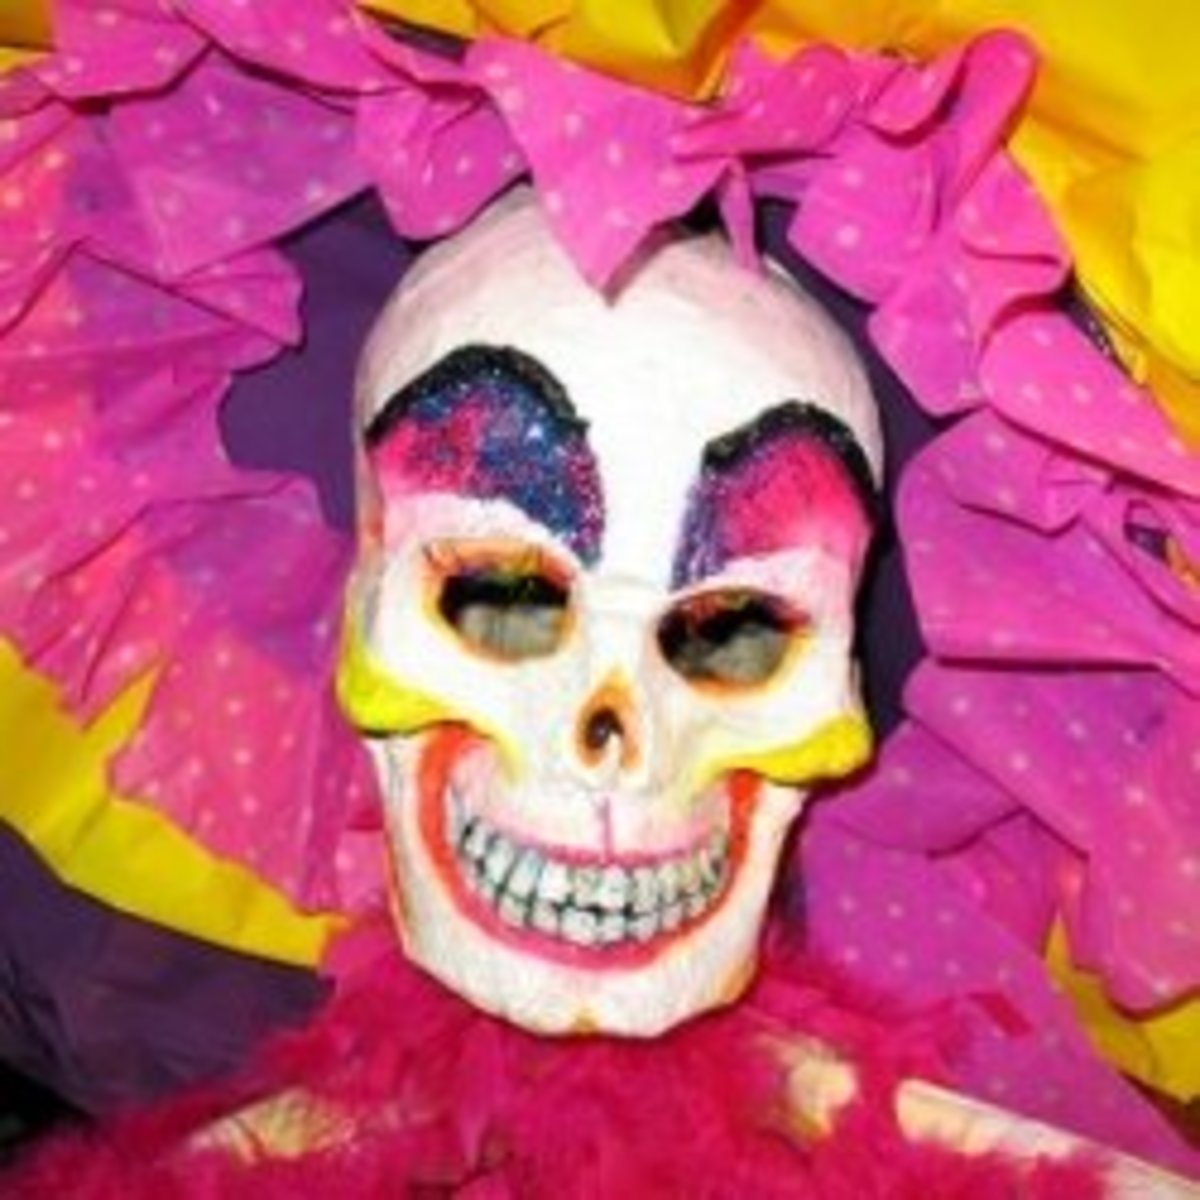 Make a Day of the Dead Mask for Dia de los Muertos